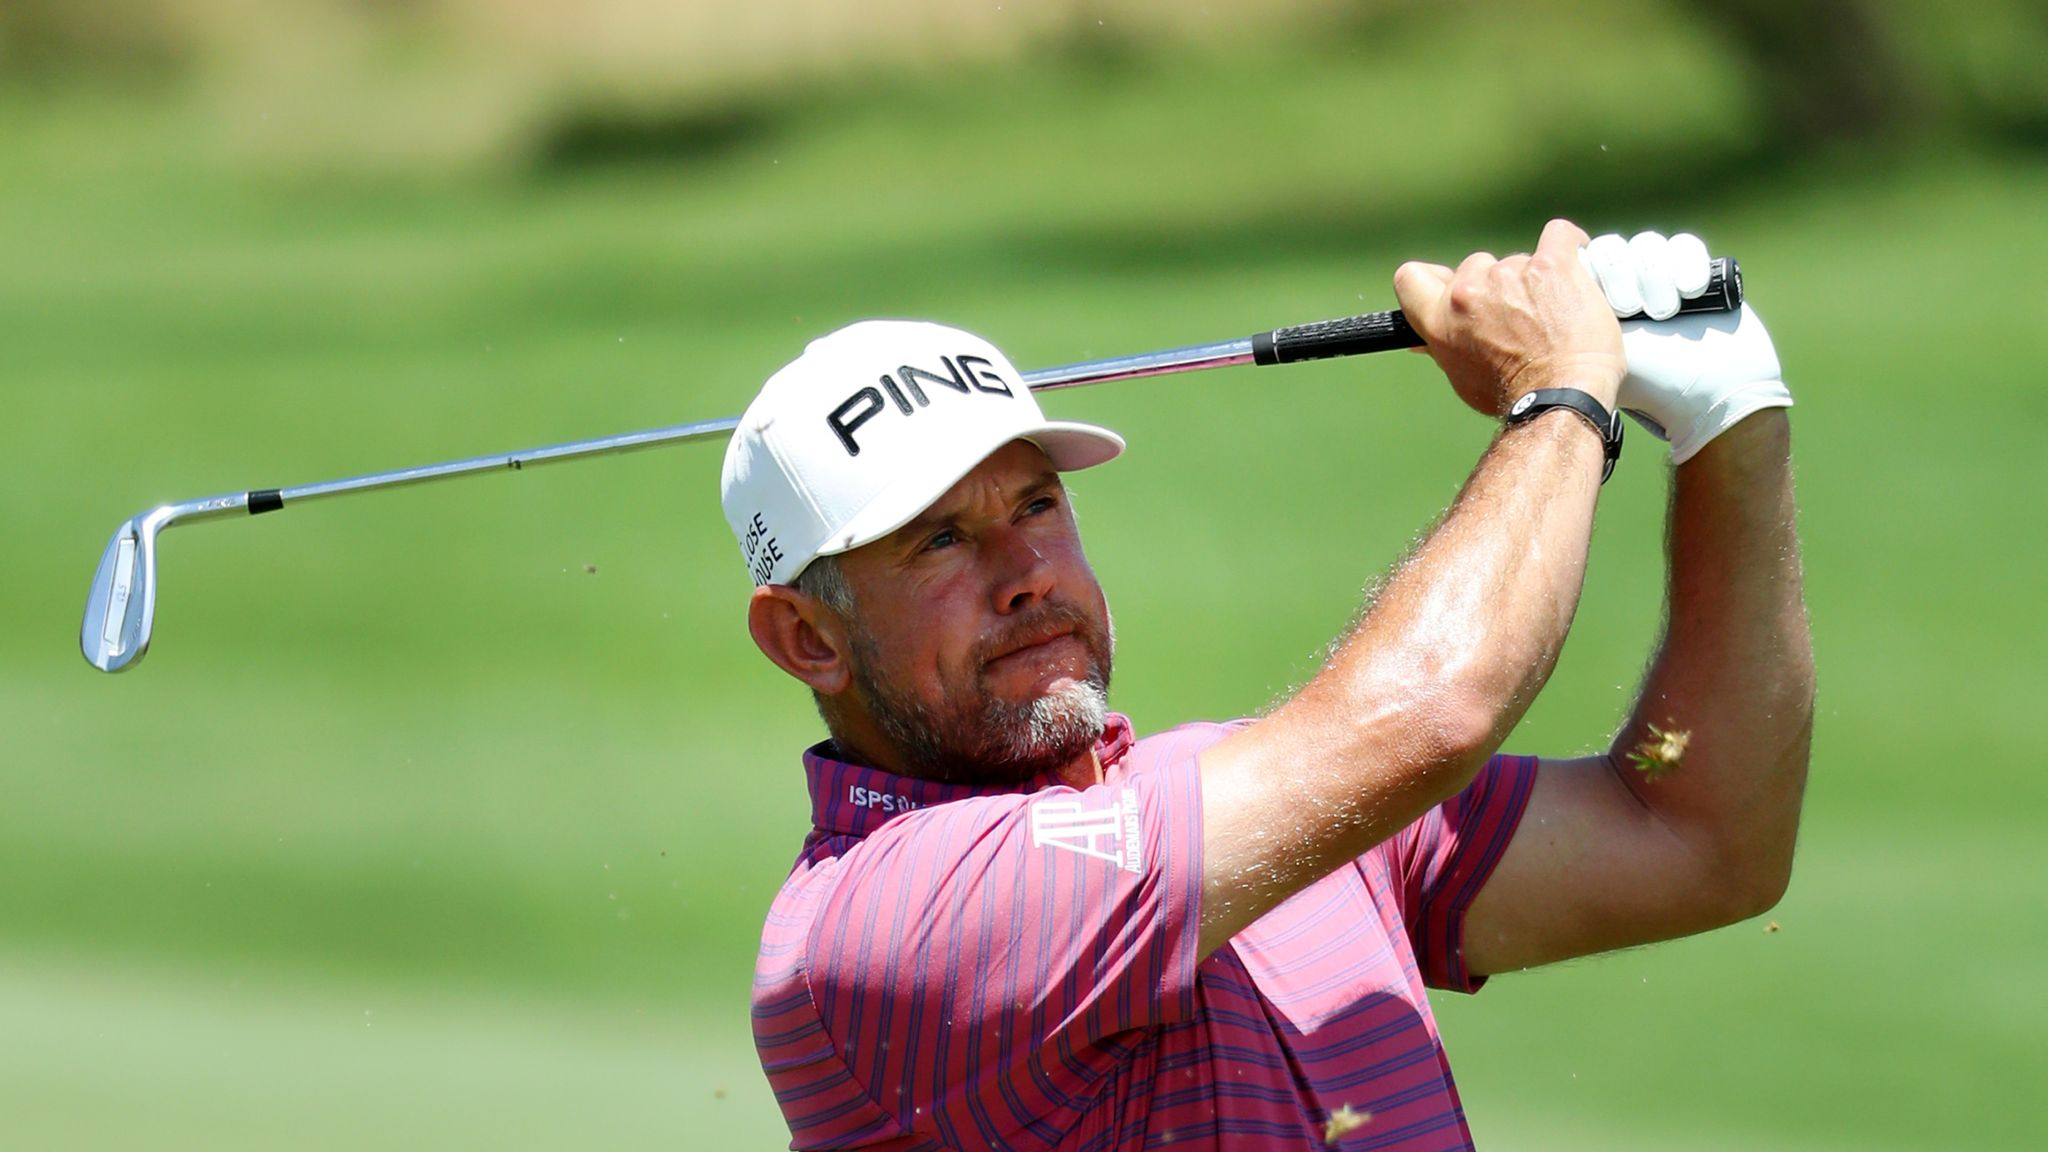 Louis Oosthuizen shrugs off kidney stones to lead in South Africa